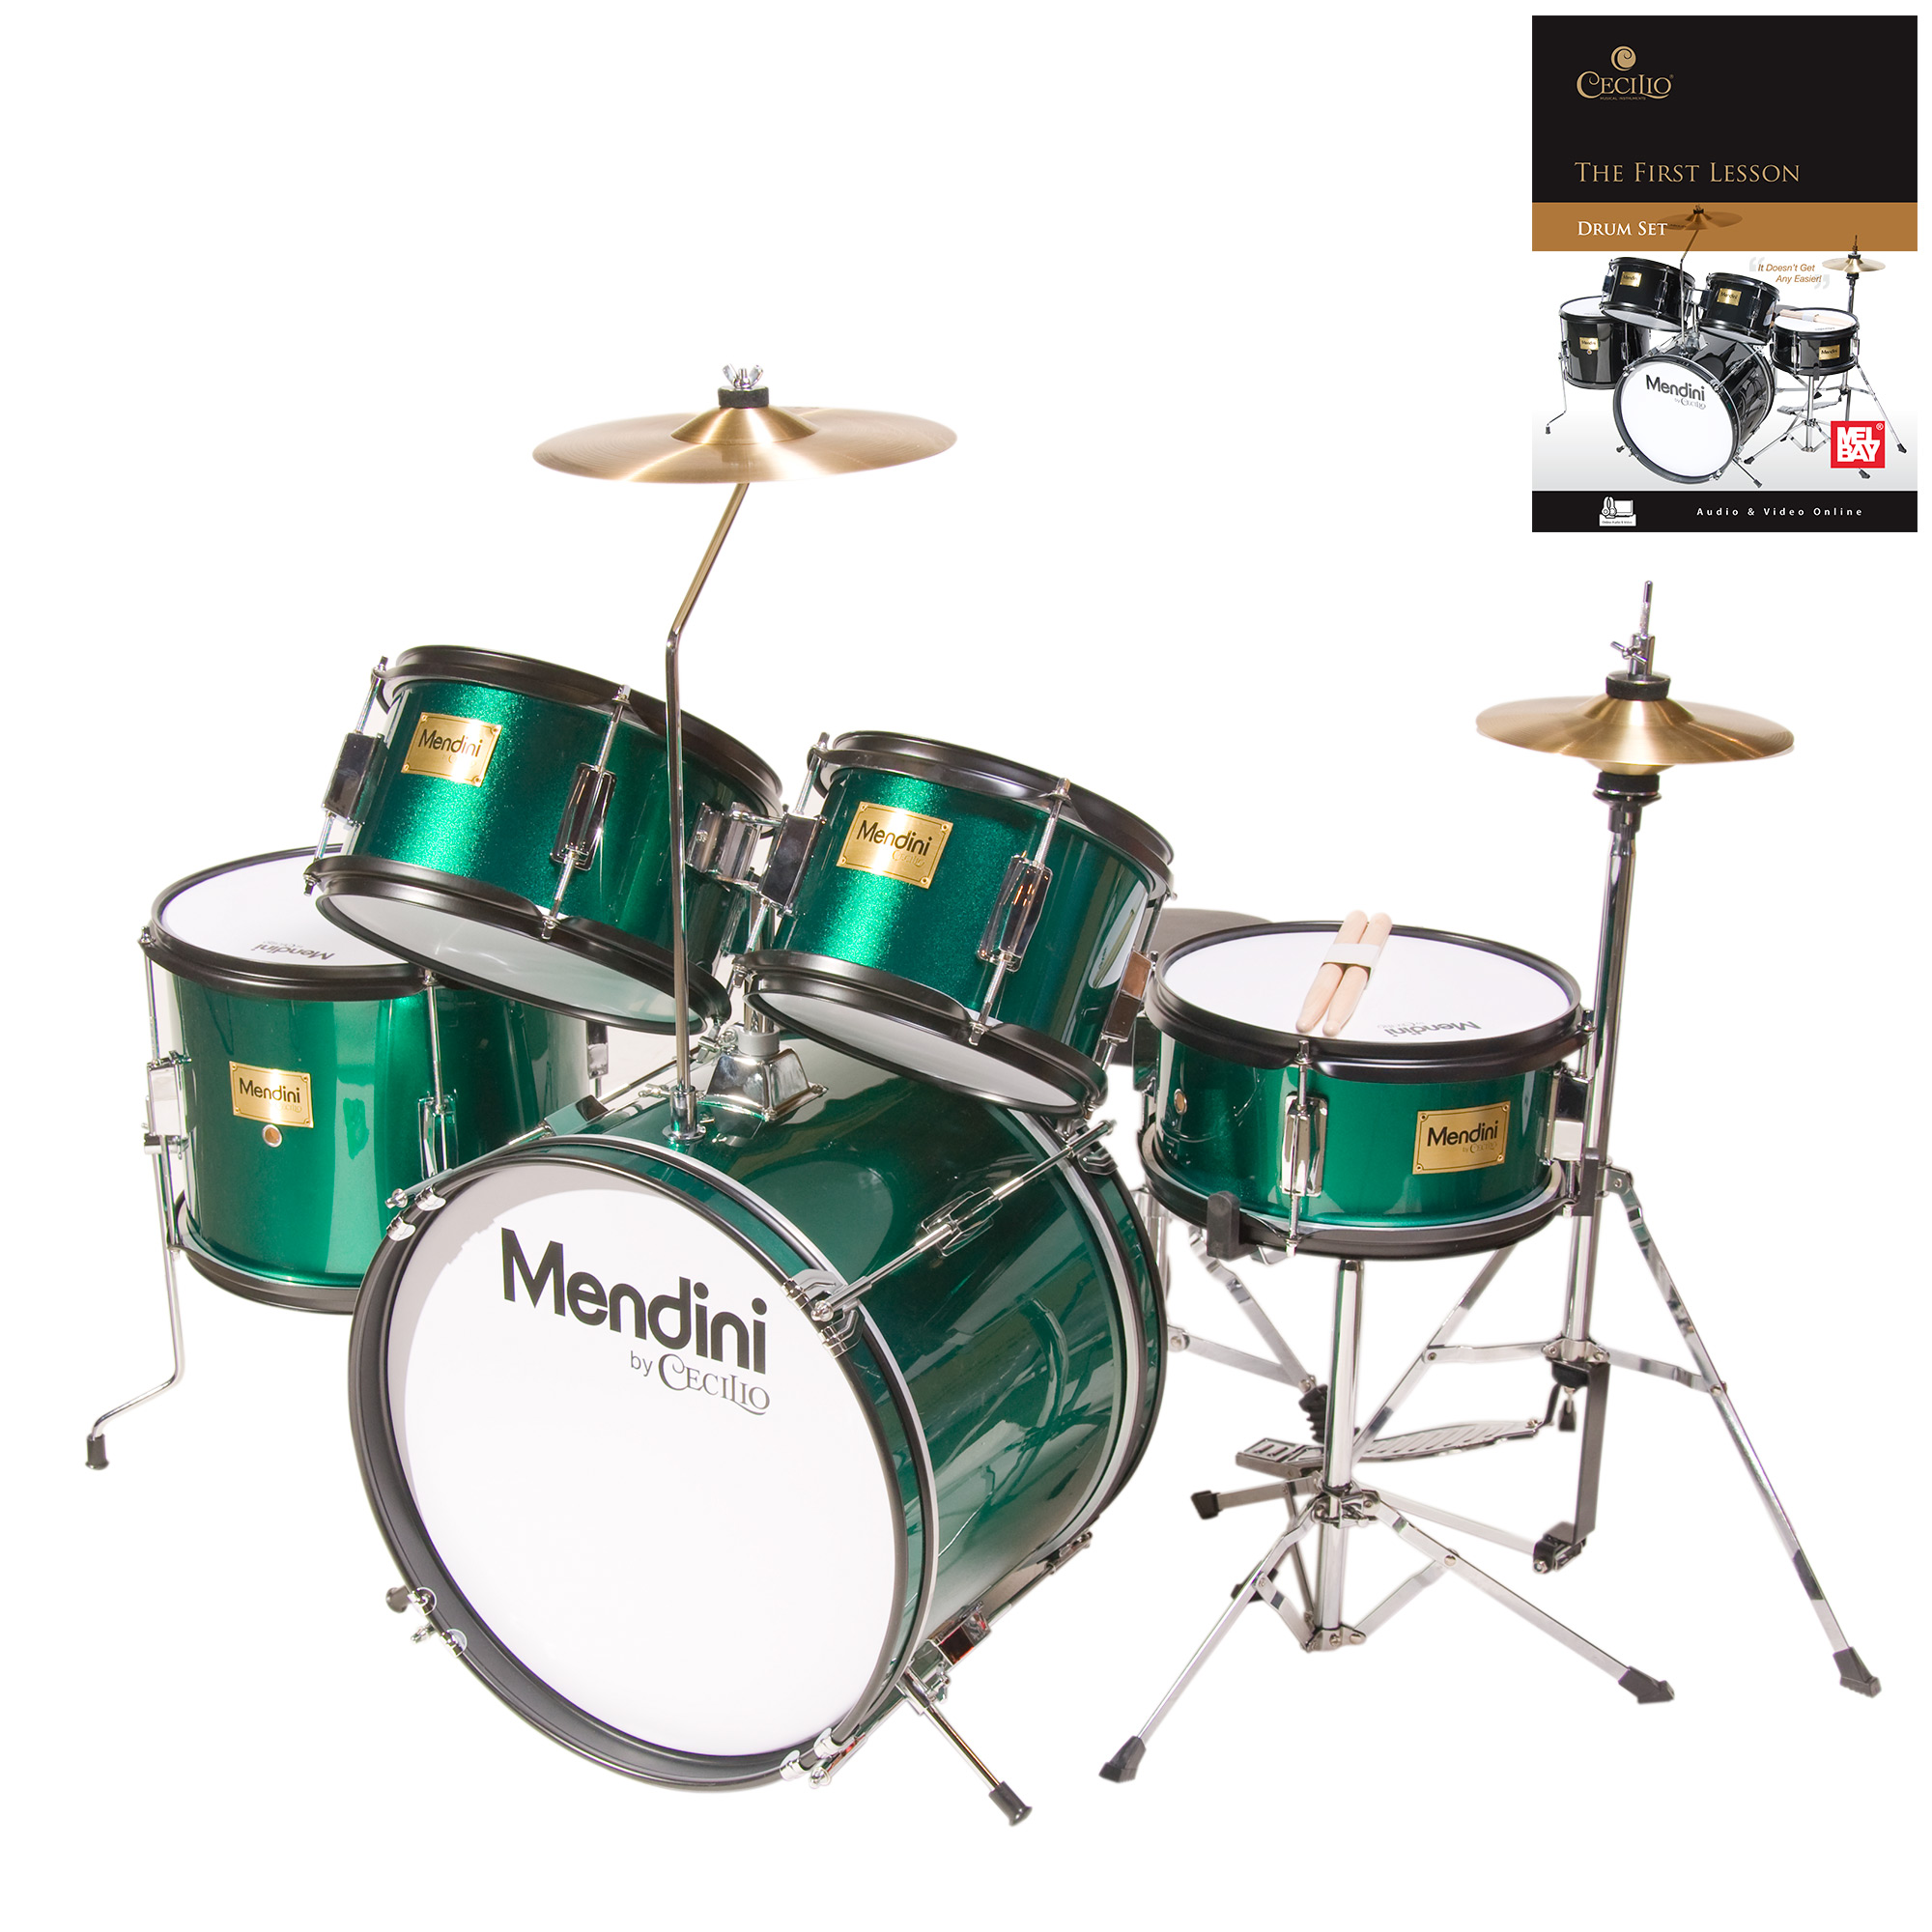 "Mendini by Cecilio 16"" 5-Piece Complete Kids / Junior Drum Set with Adjustable Throne, Cymbal, Pedal, Drumsticks & Lesson Book, Metallic Green, MJDS-5-GN"